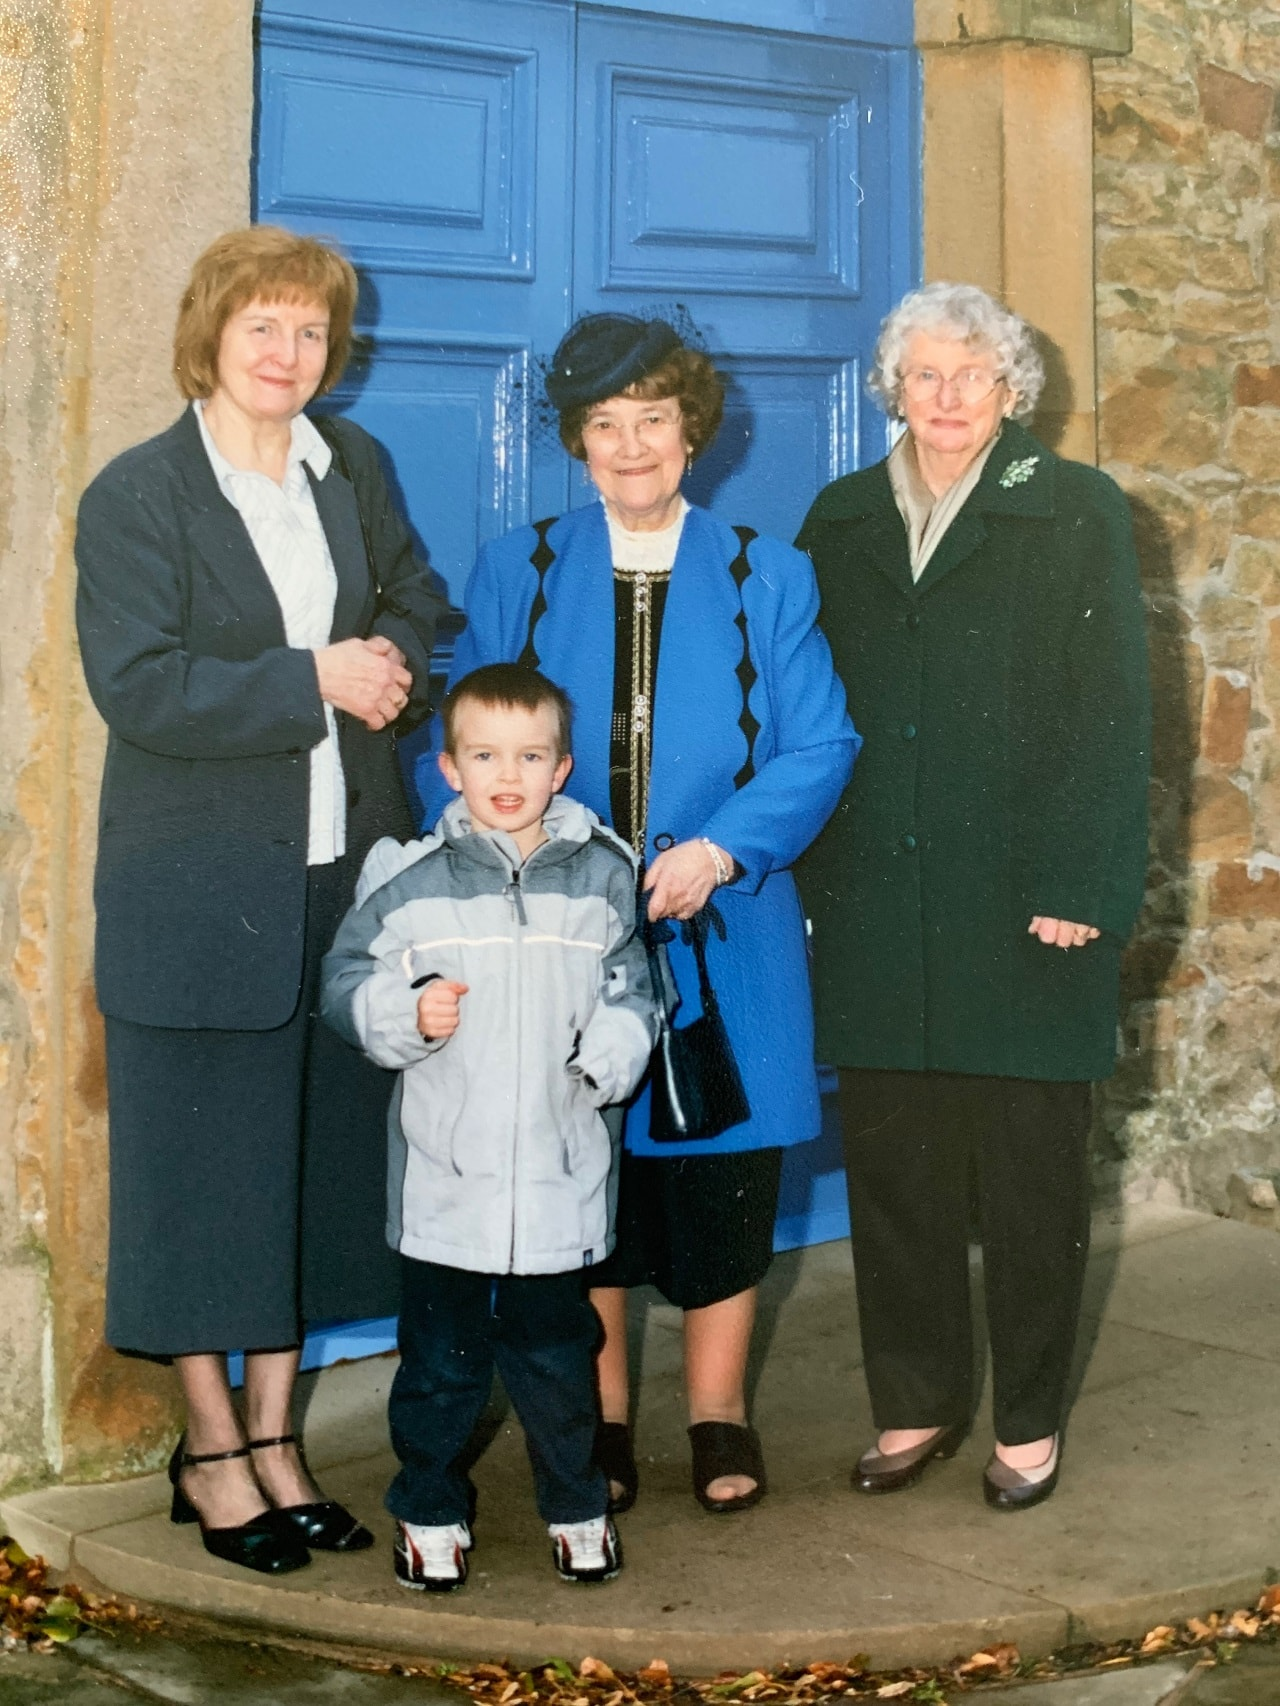 Cometan with his maternal grandmother, Hilda Warbrick (left), his paternal grandmother, Irene Taylor (centre), and his great aunt, Monica Bolton (right).